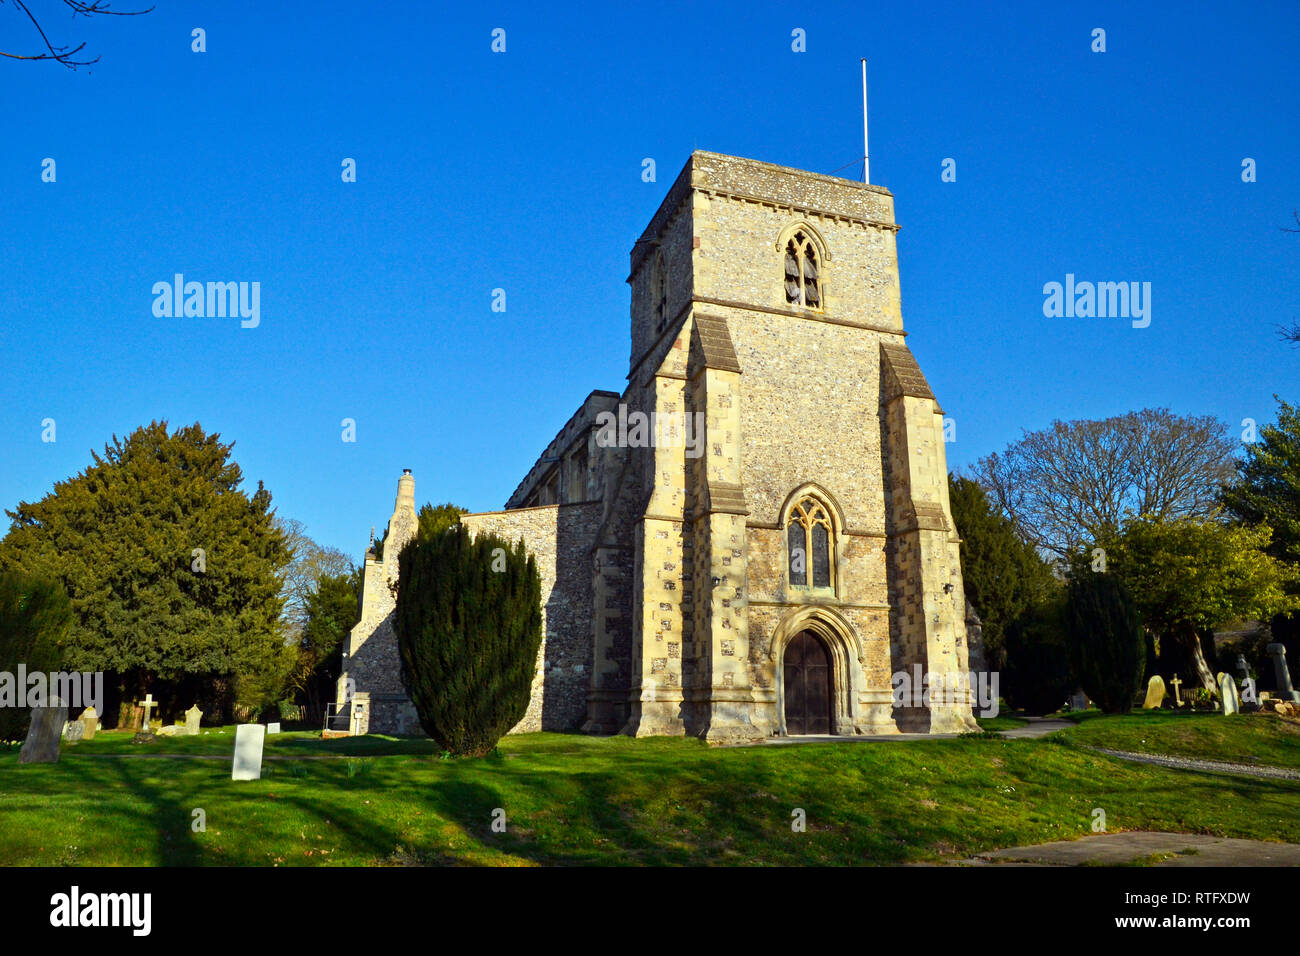 St Dunstans Monks Risborough, near Princes Risborough, Buckinghamshire, UK - Stock Image